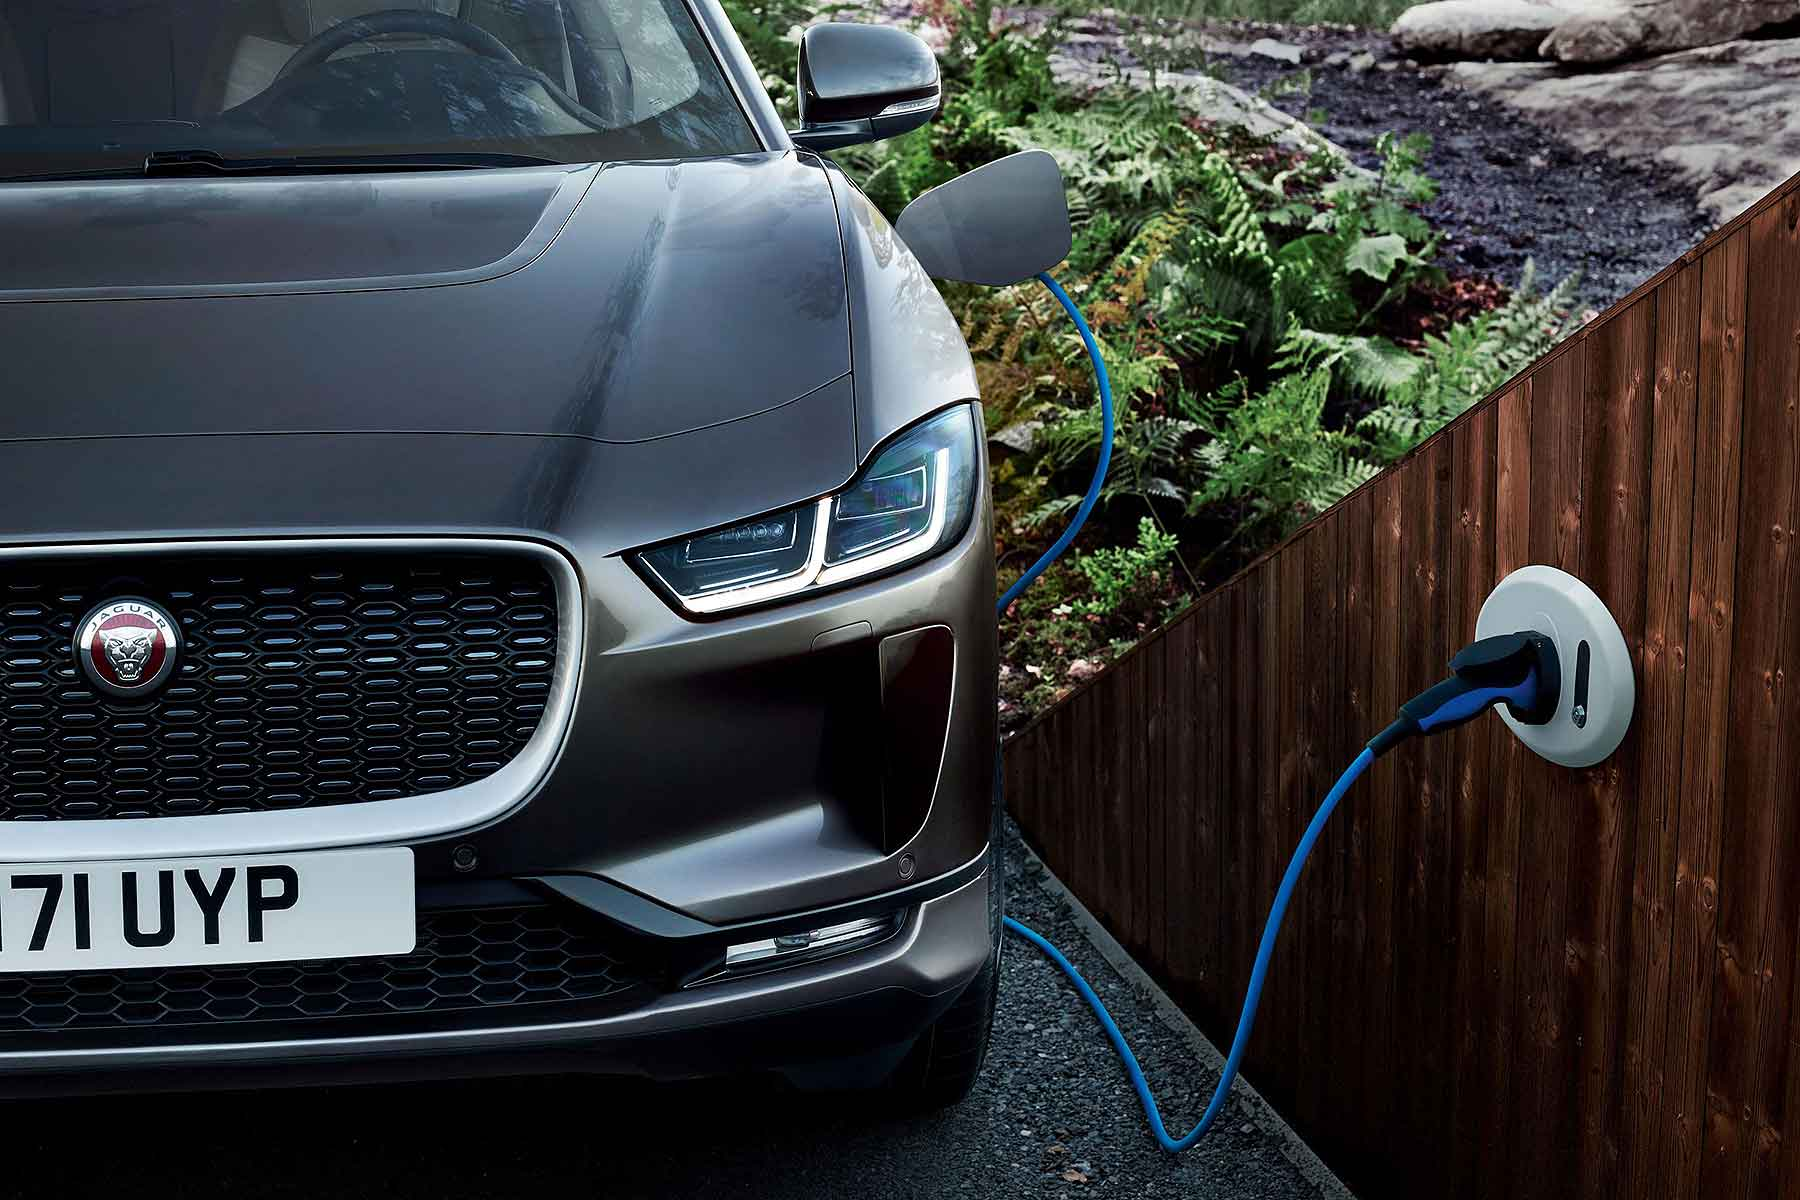 Jaguar I-Pace wallbox charging